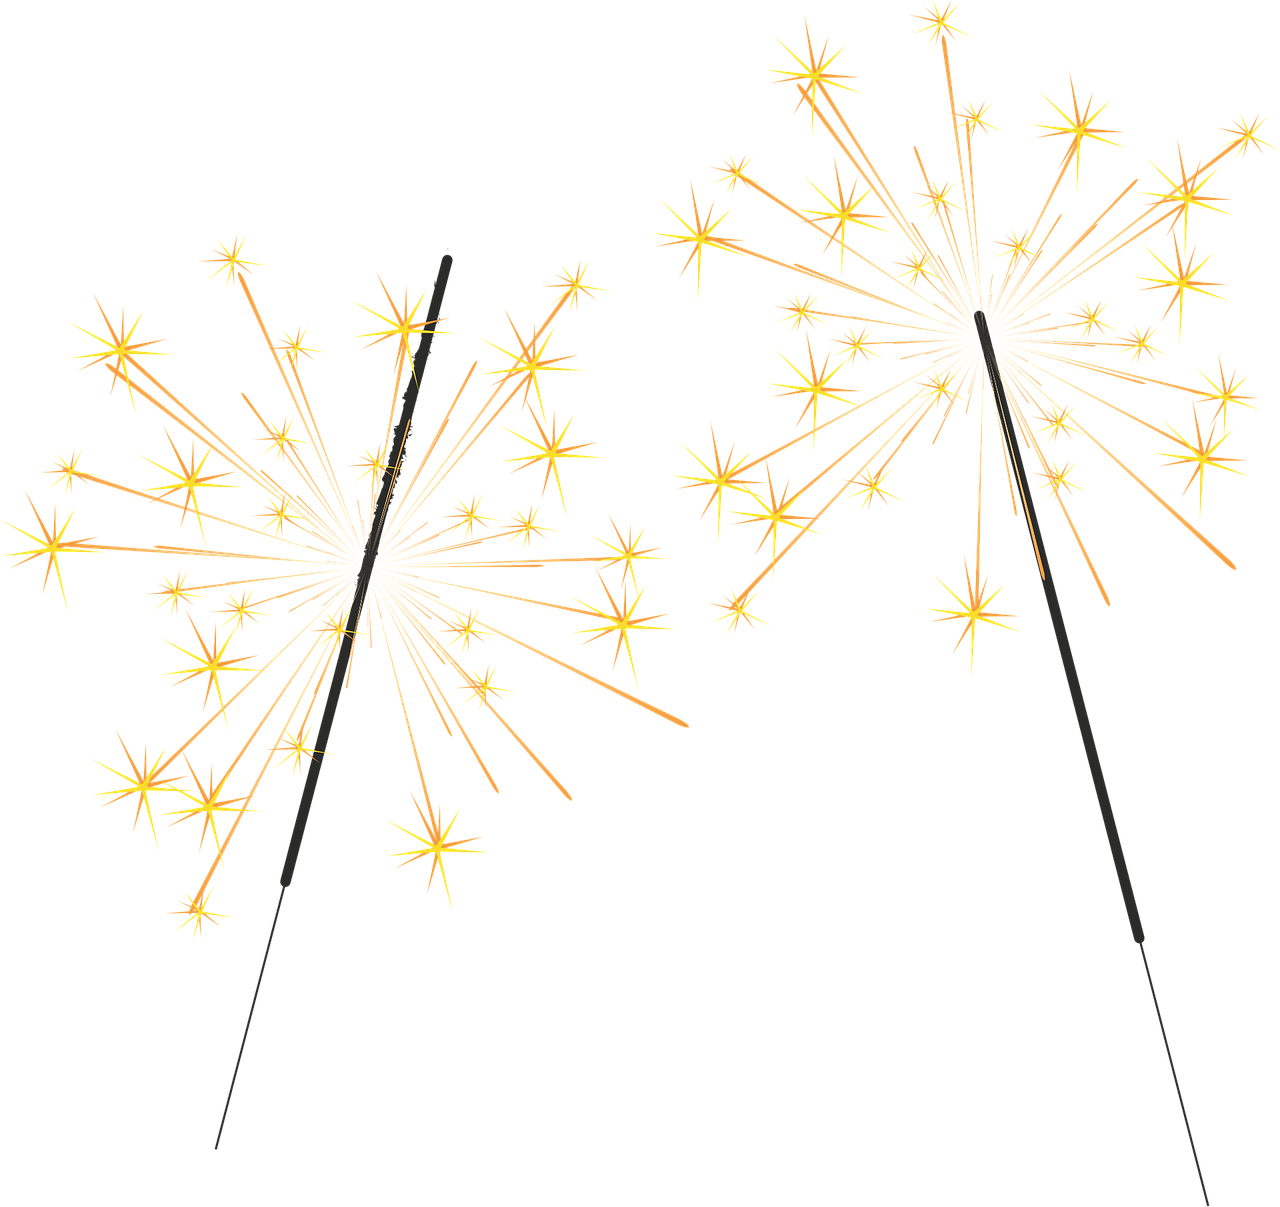 Firecracker vector sparkler. Collection of free festivities